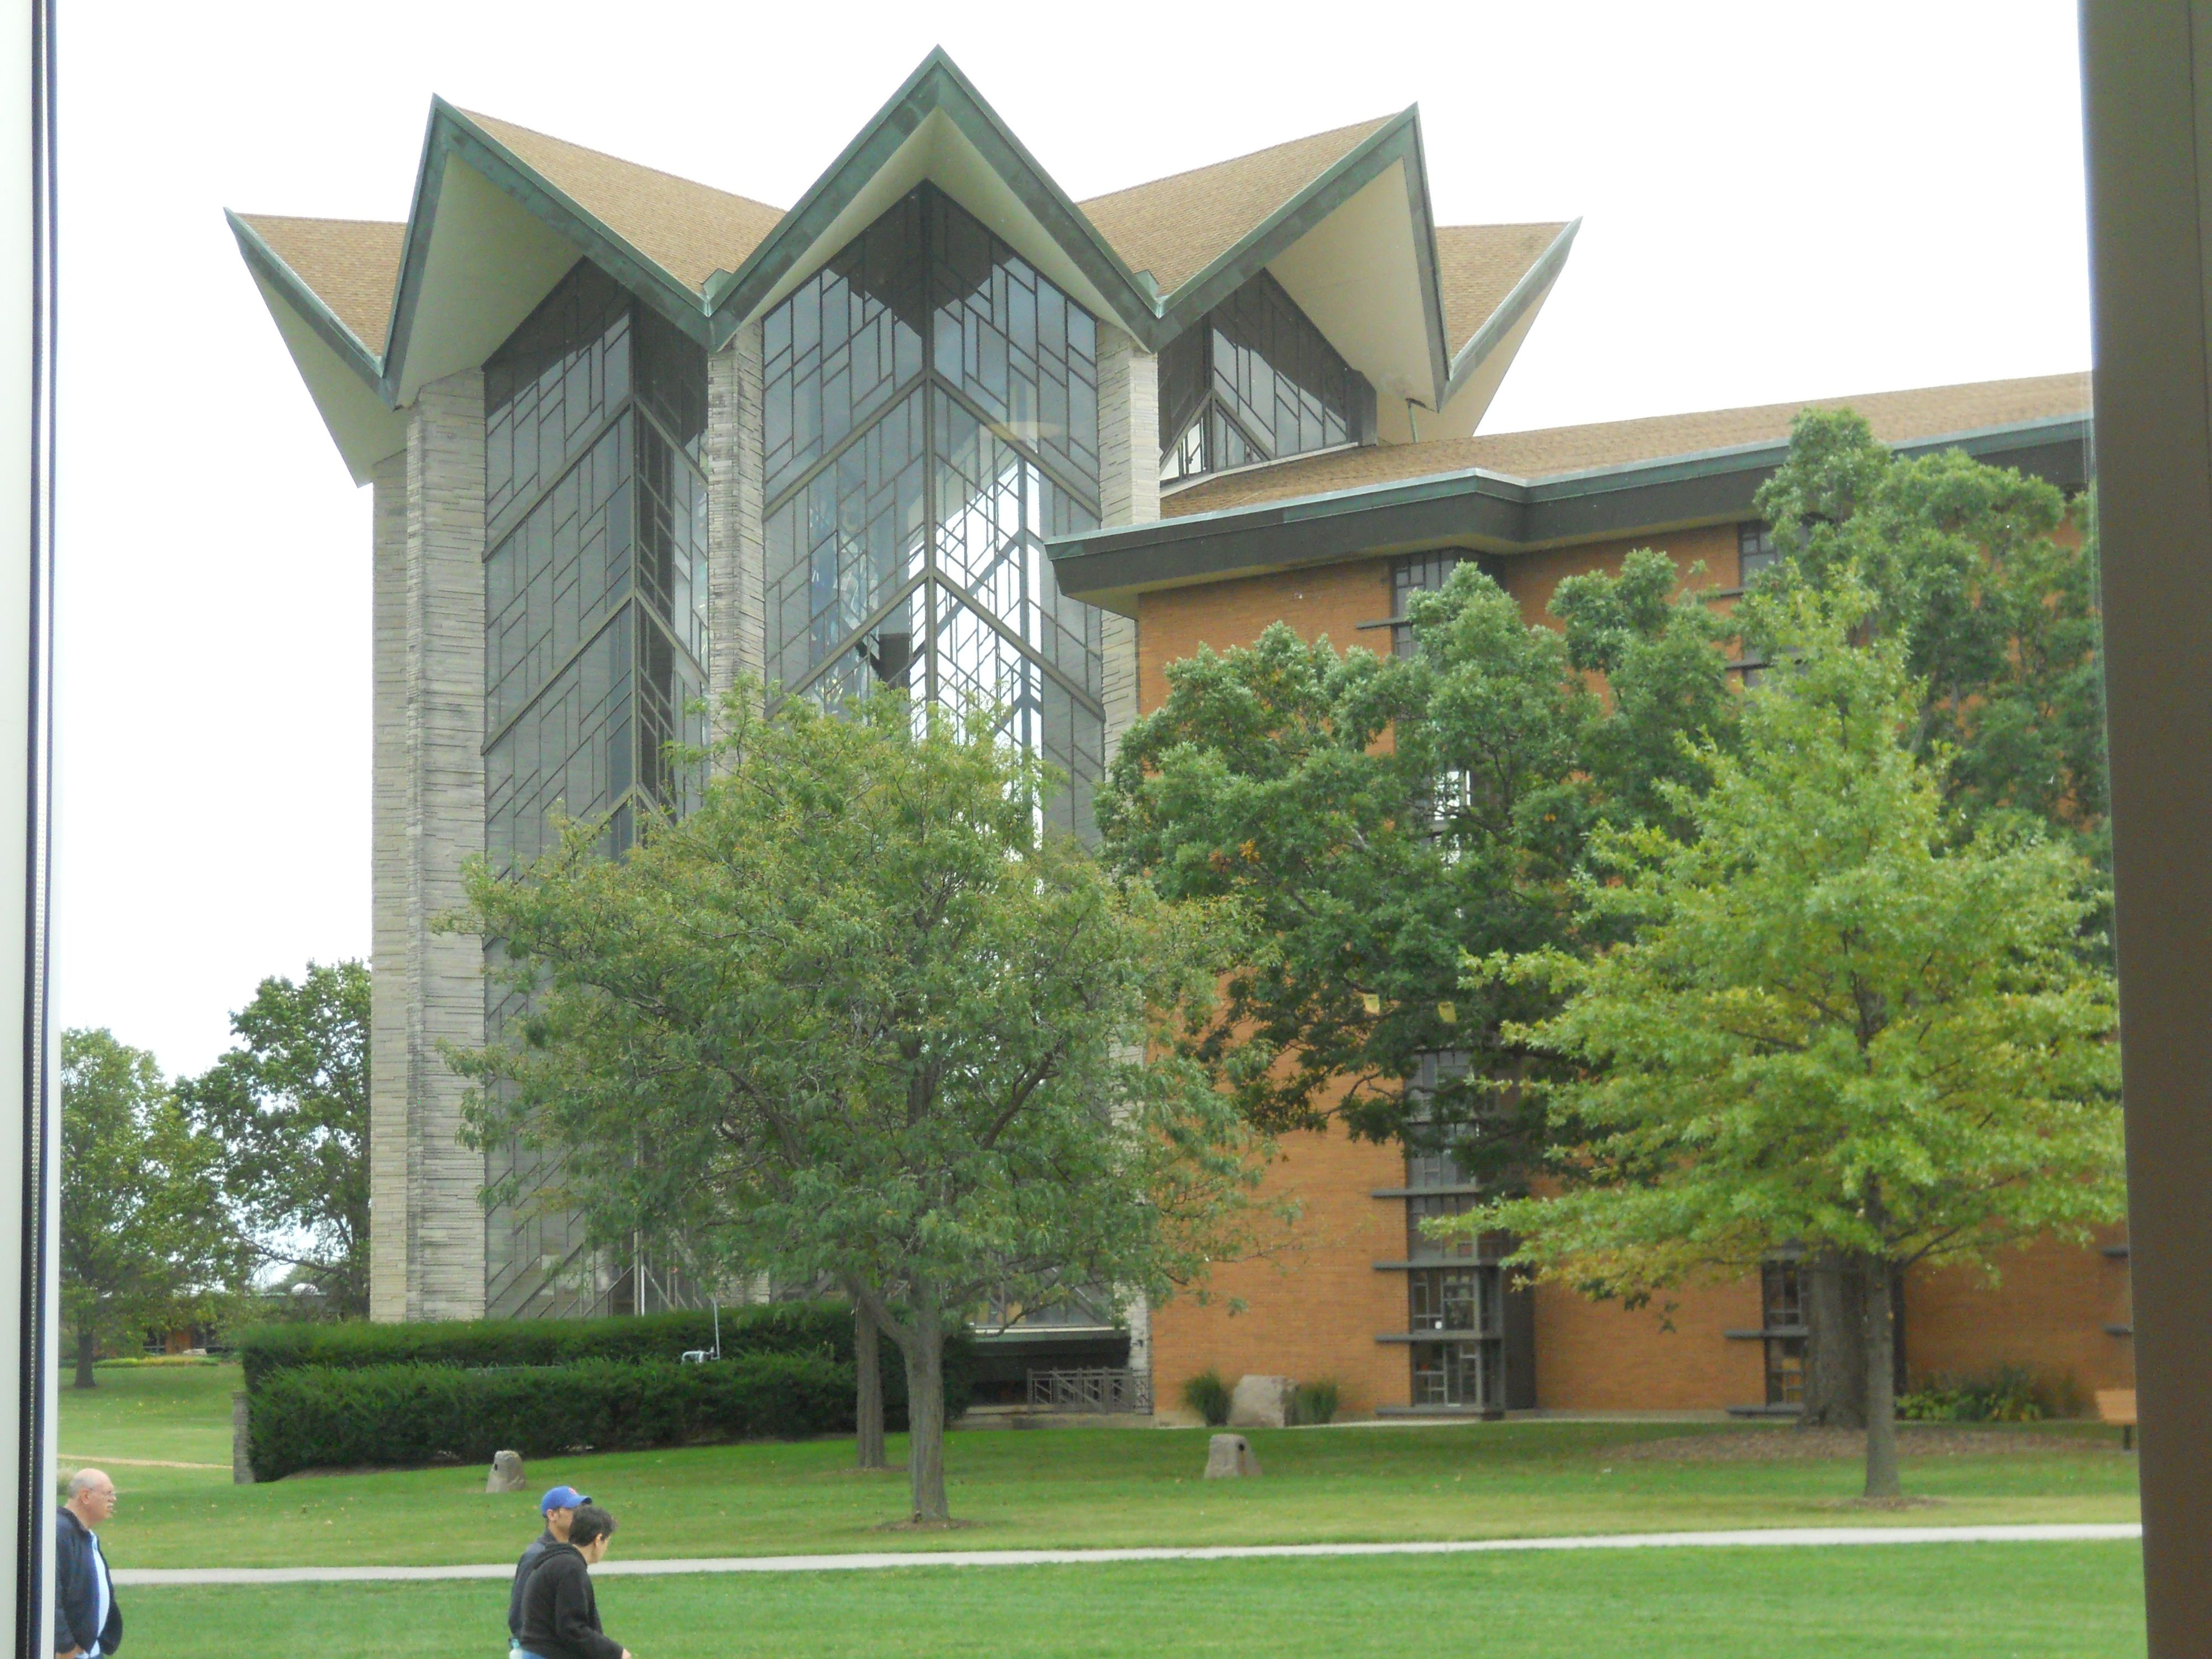 valparaiso university dating Valparaiso — a local woman told police that her first date with a man she met  on a dating app turned ugly when he raped her and subjected her to  nathaniel  flagg, 22, of the shorewood forest subdivision in union.